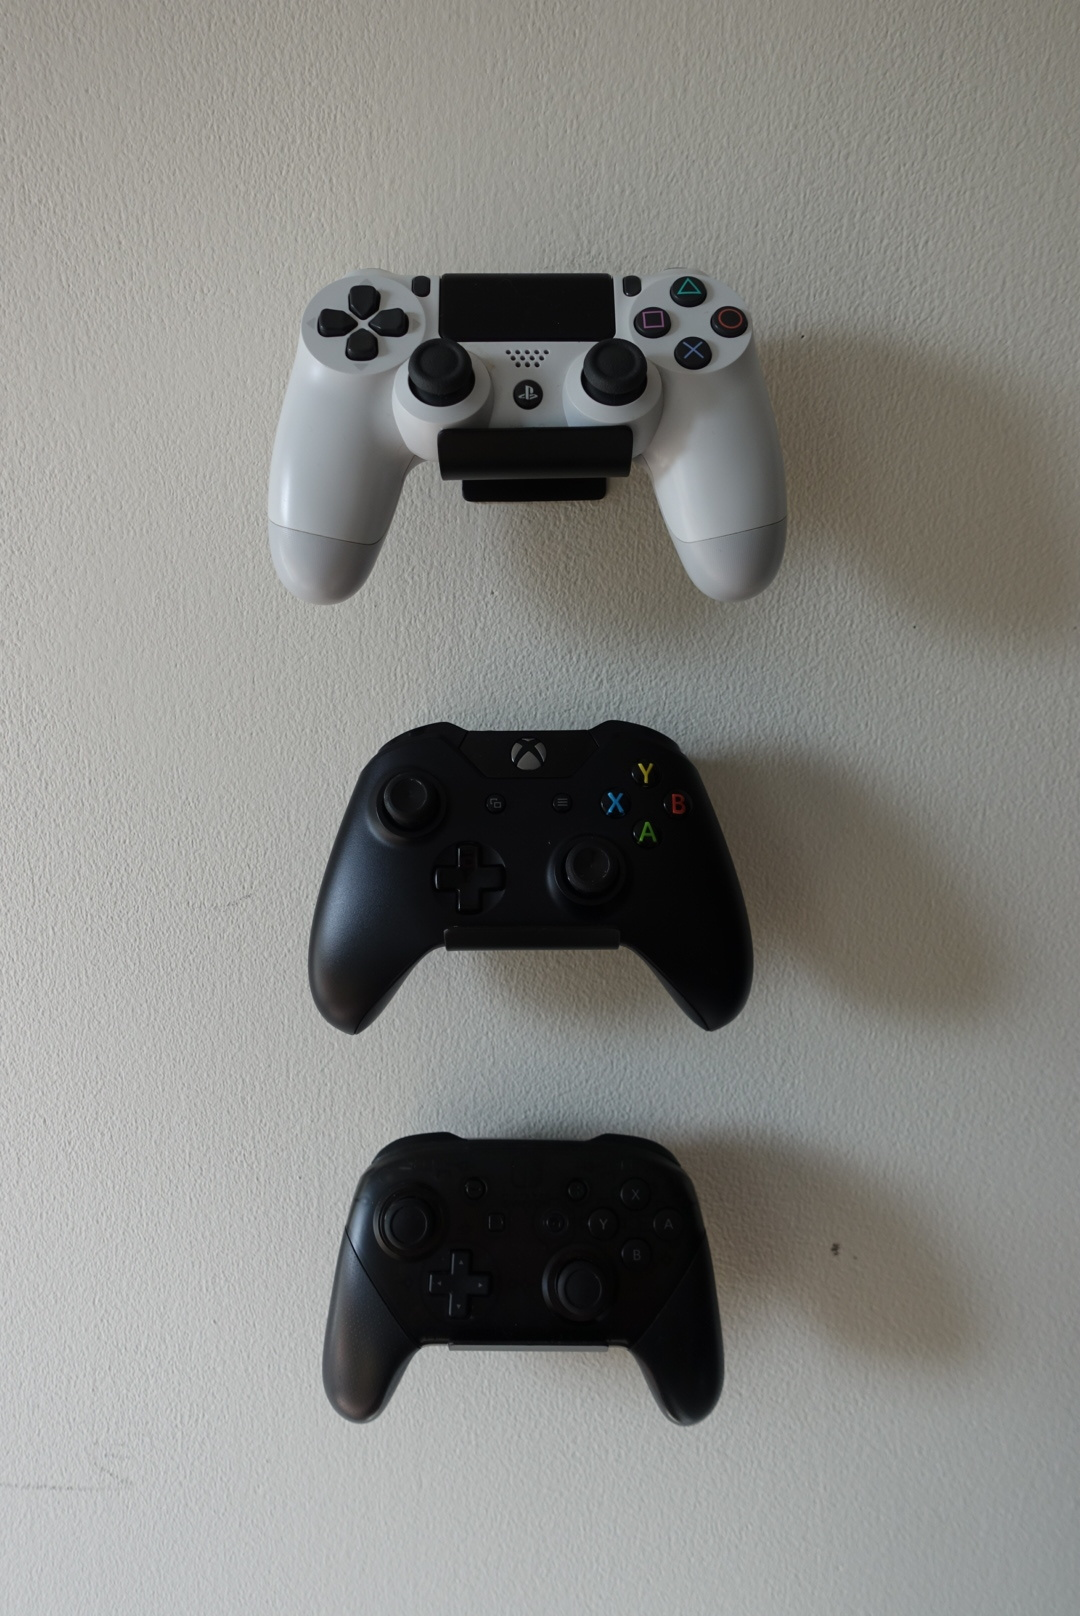 Mounted gaming console controllers for PS4, XBox, and Nintendo Switch.